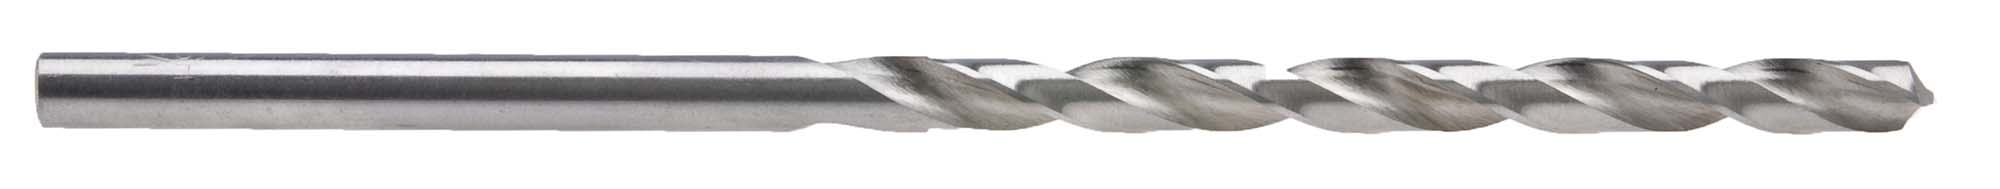 "G (.261"") ""Taper Length"" Long Straight Shank Drill Bit, High Speed Steel"